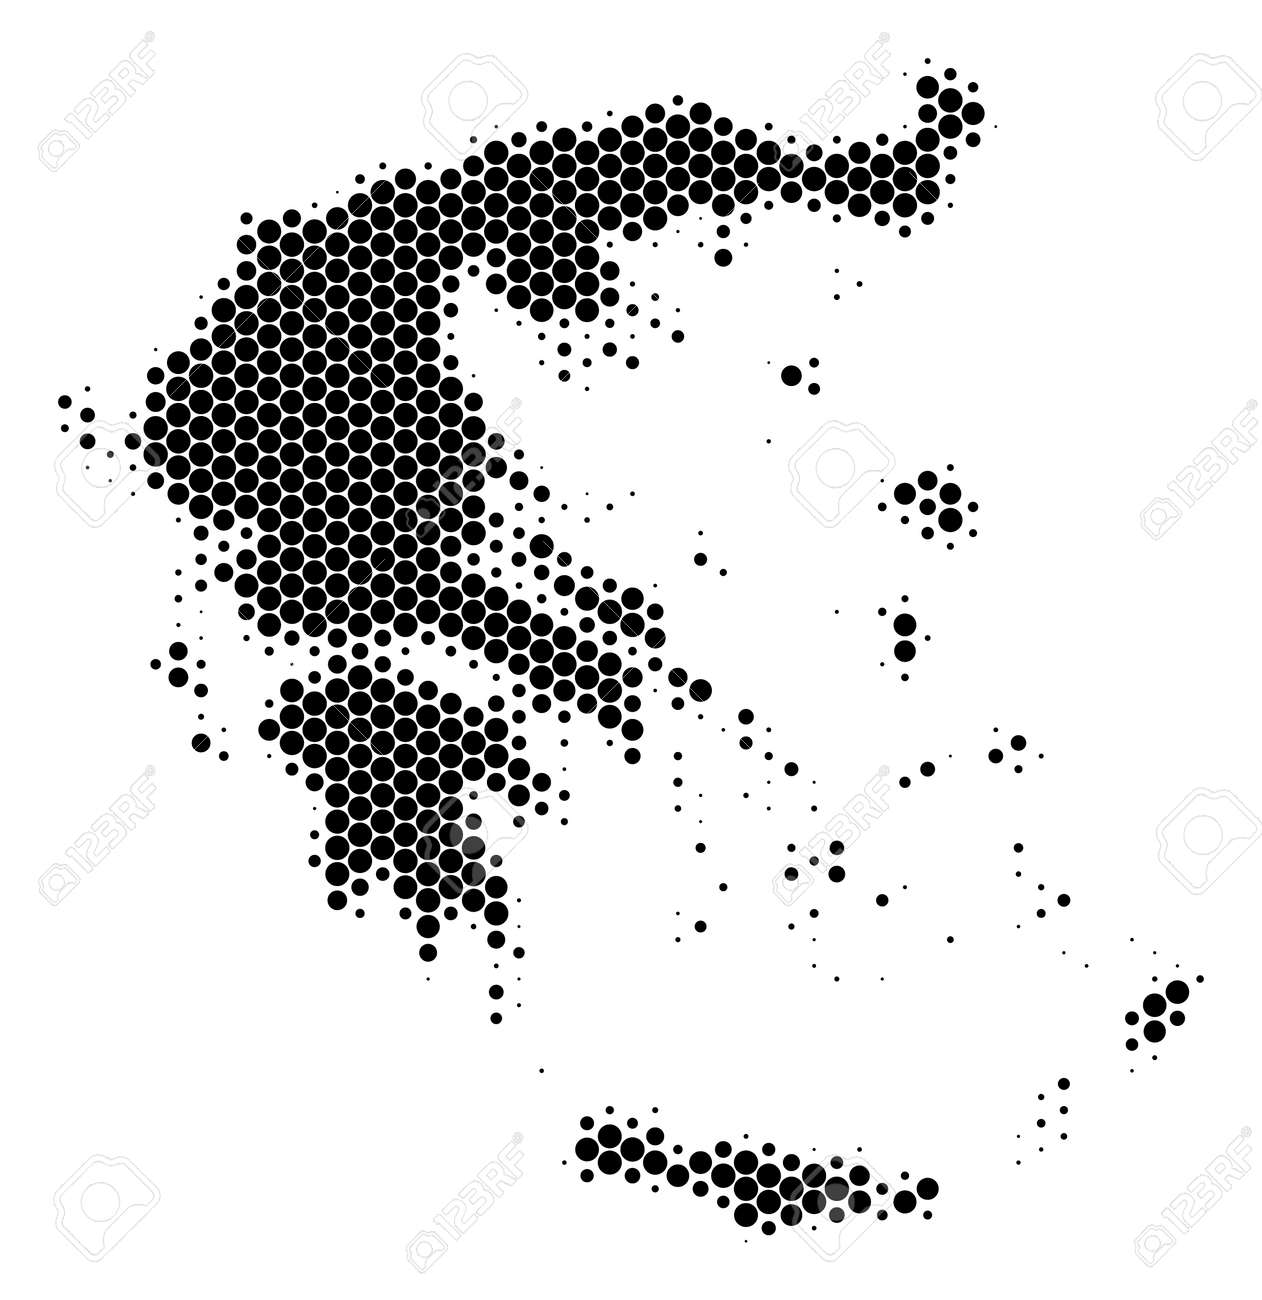 Halftone Round Spot Greece Map. Vector Geographic Map On A White ...